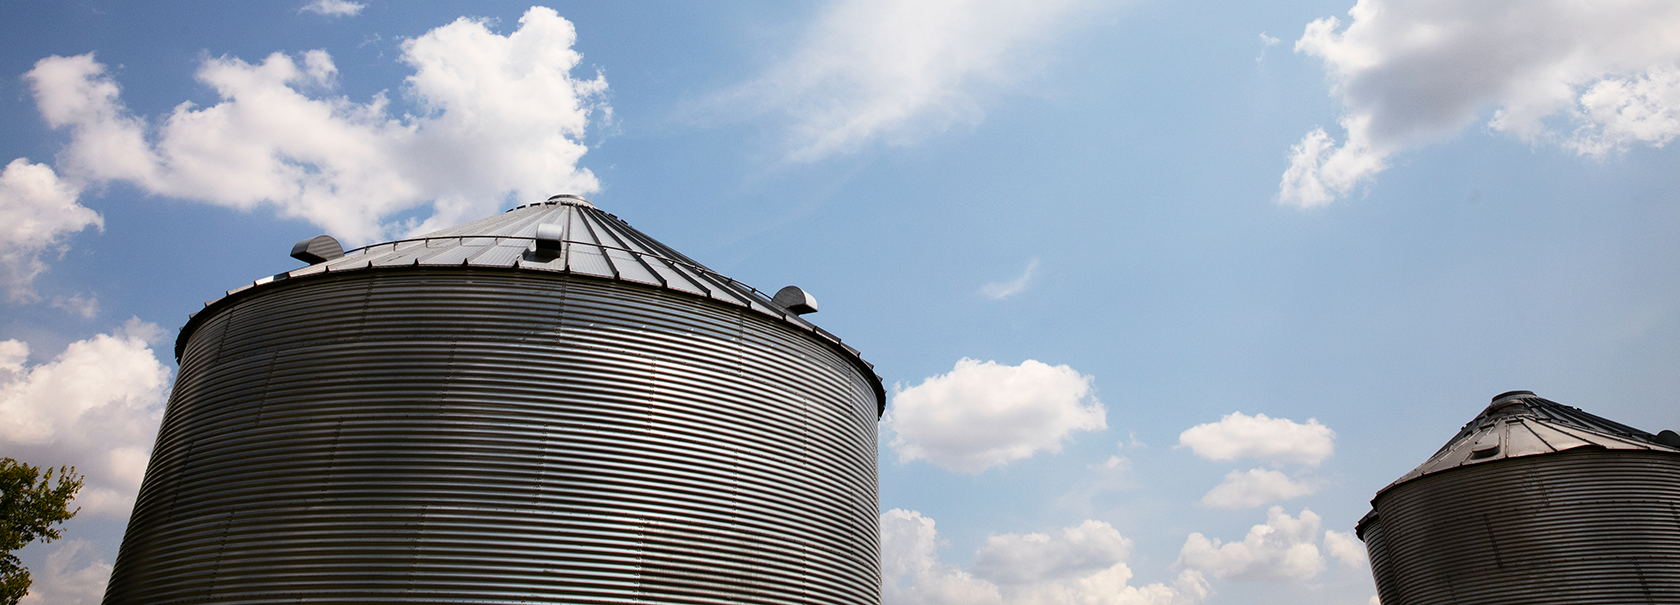 Grain bin against blue skies